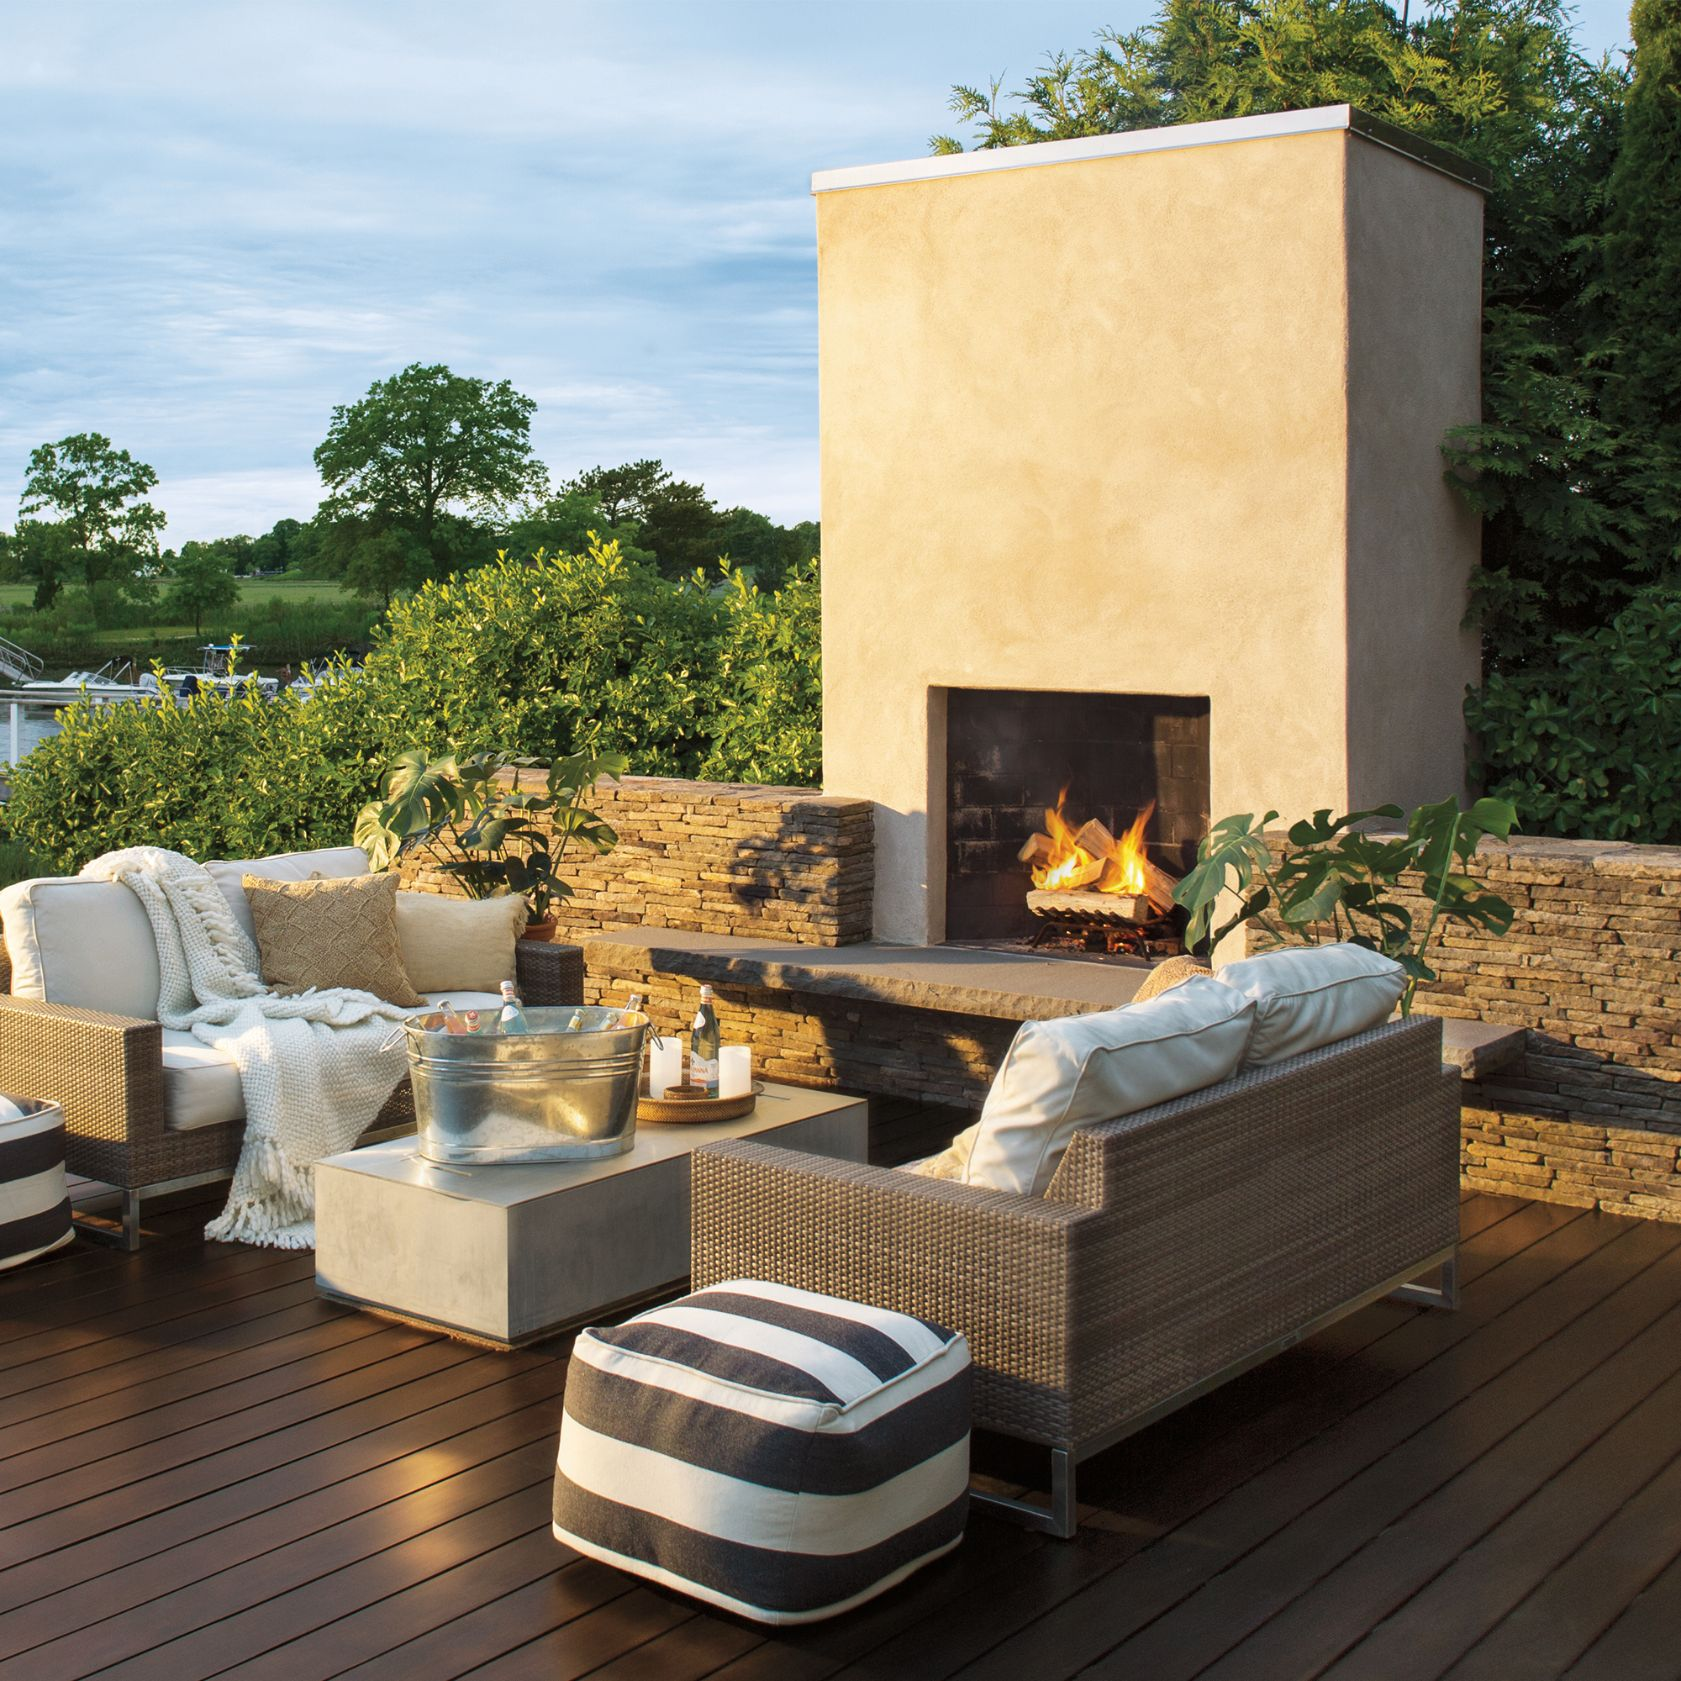 Exterior Deck With Fireplace